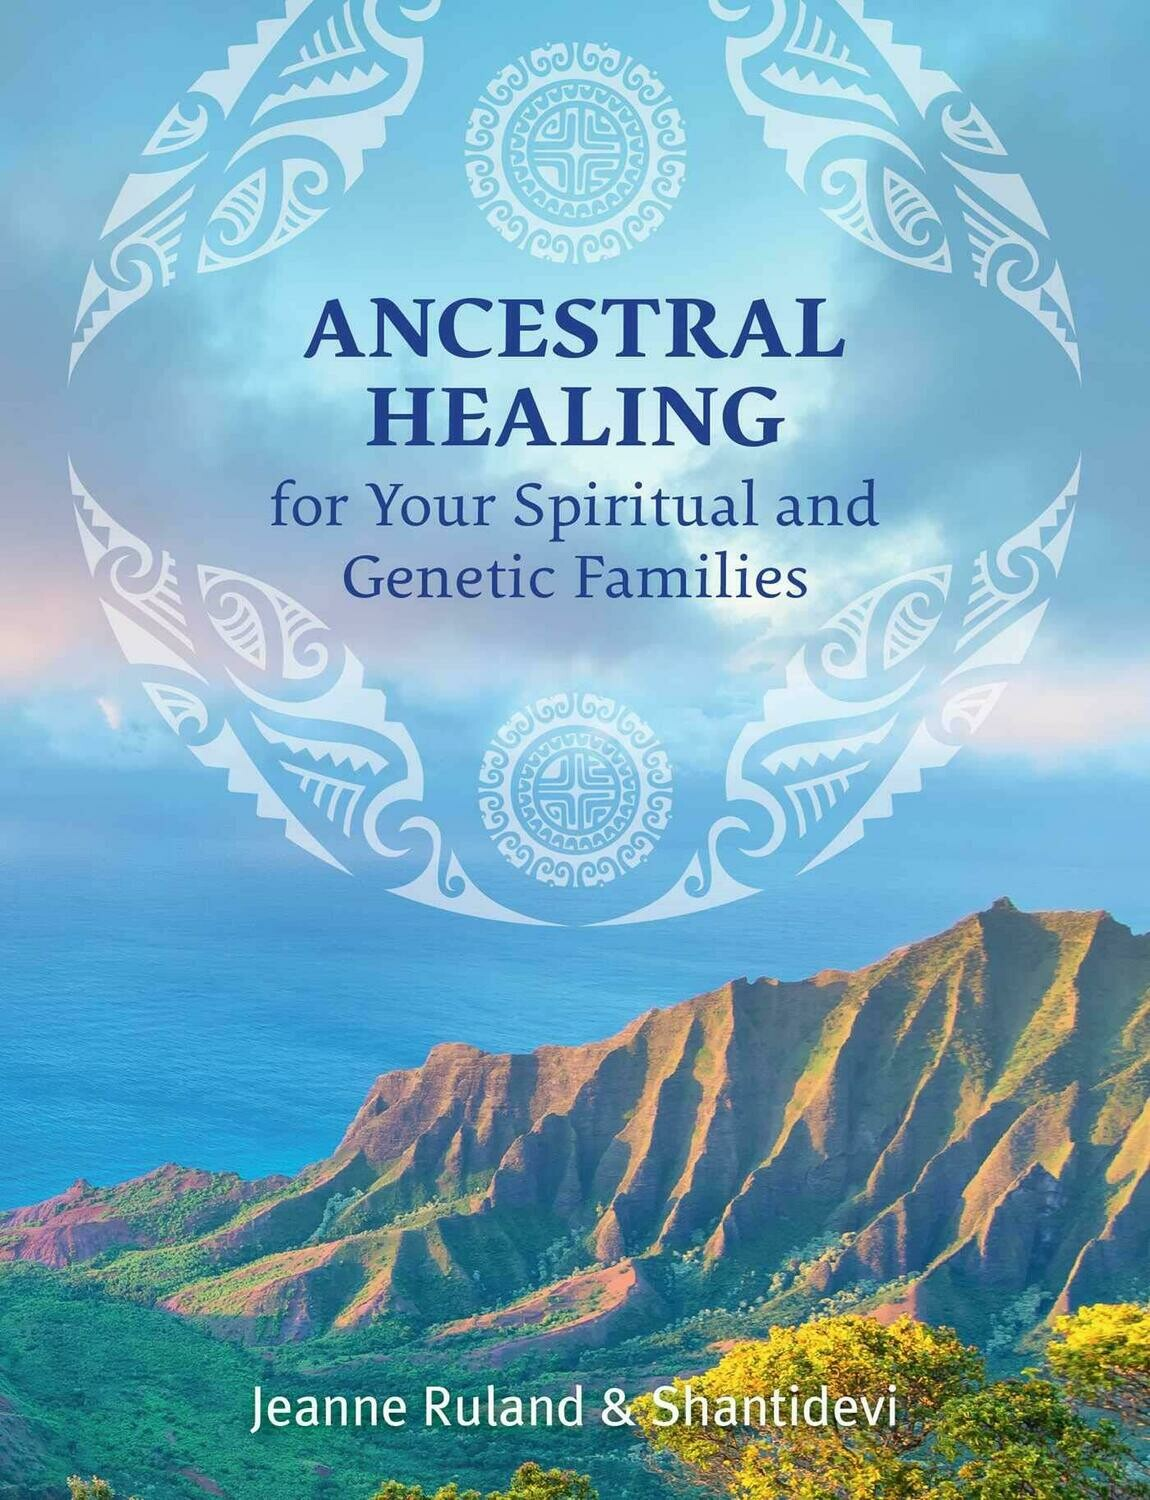 Ancestral Healing for Your Spiritual & Genetic Families